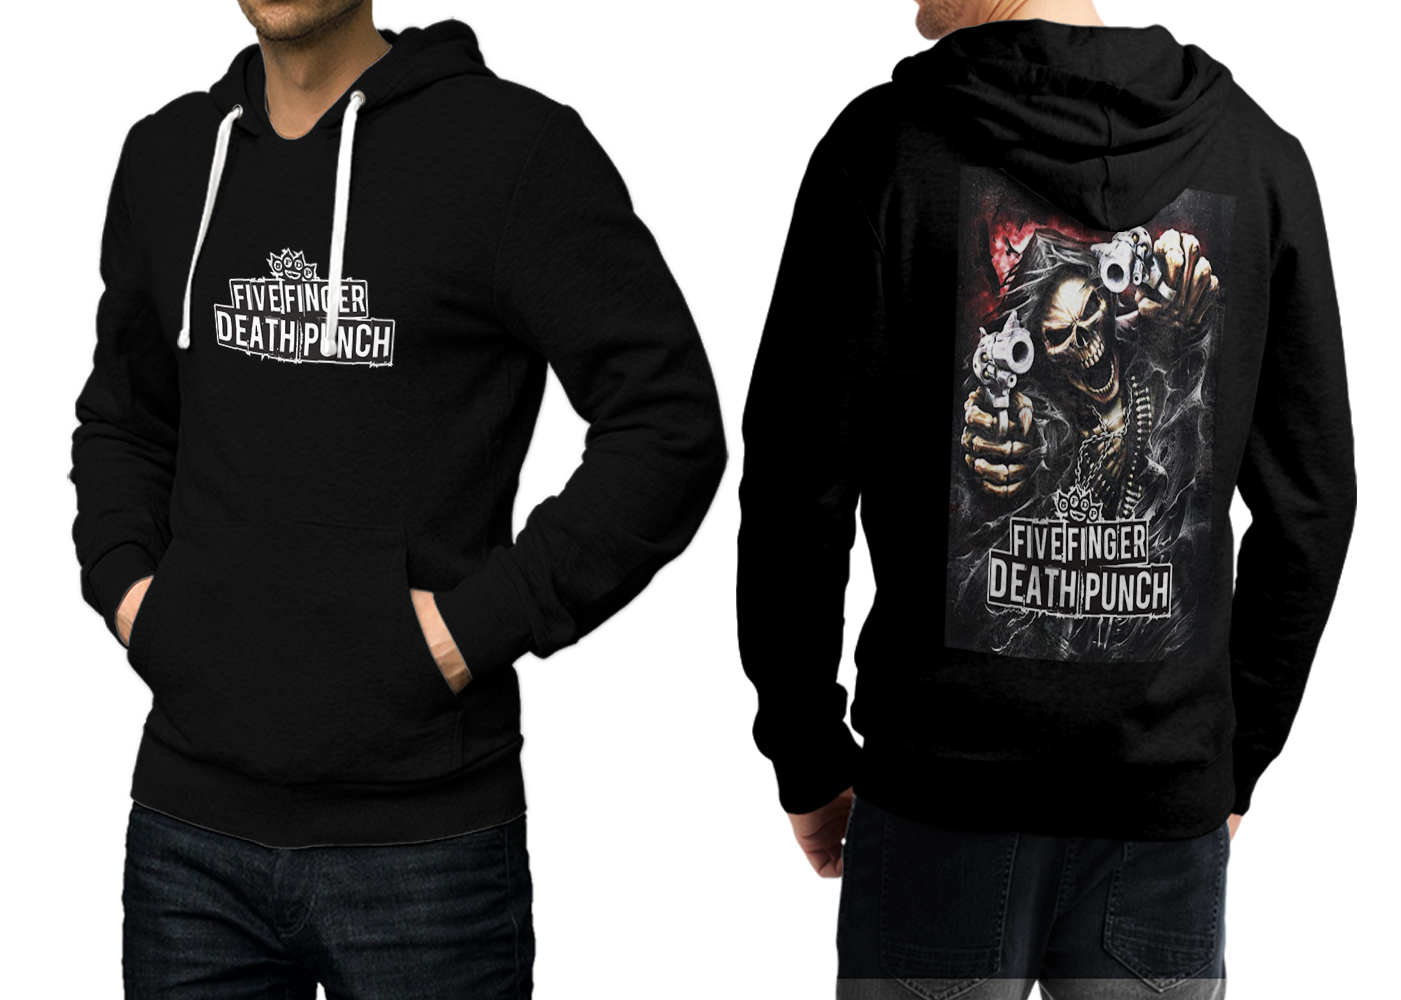 Primary image for 5 finger death punch Black Cotton Hoodie For Men